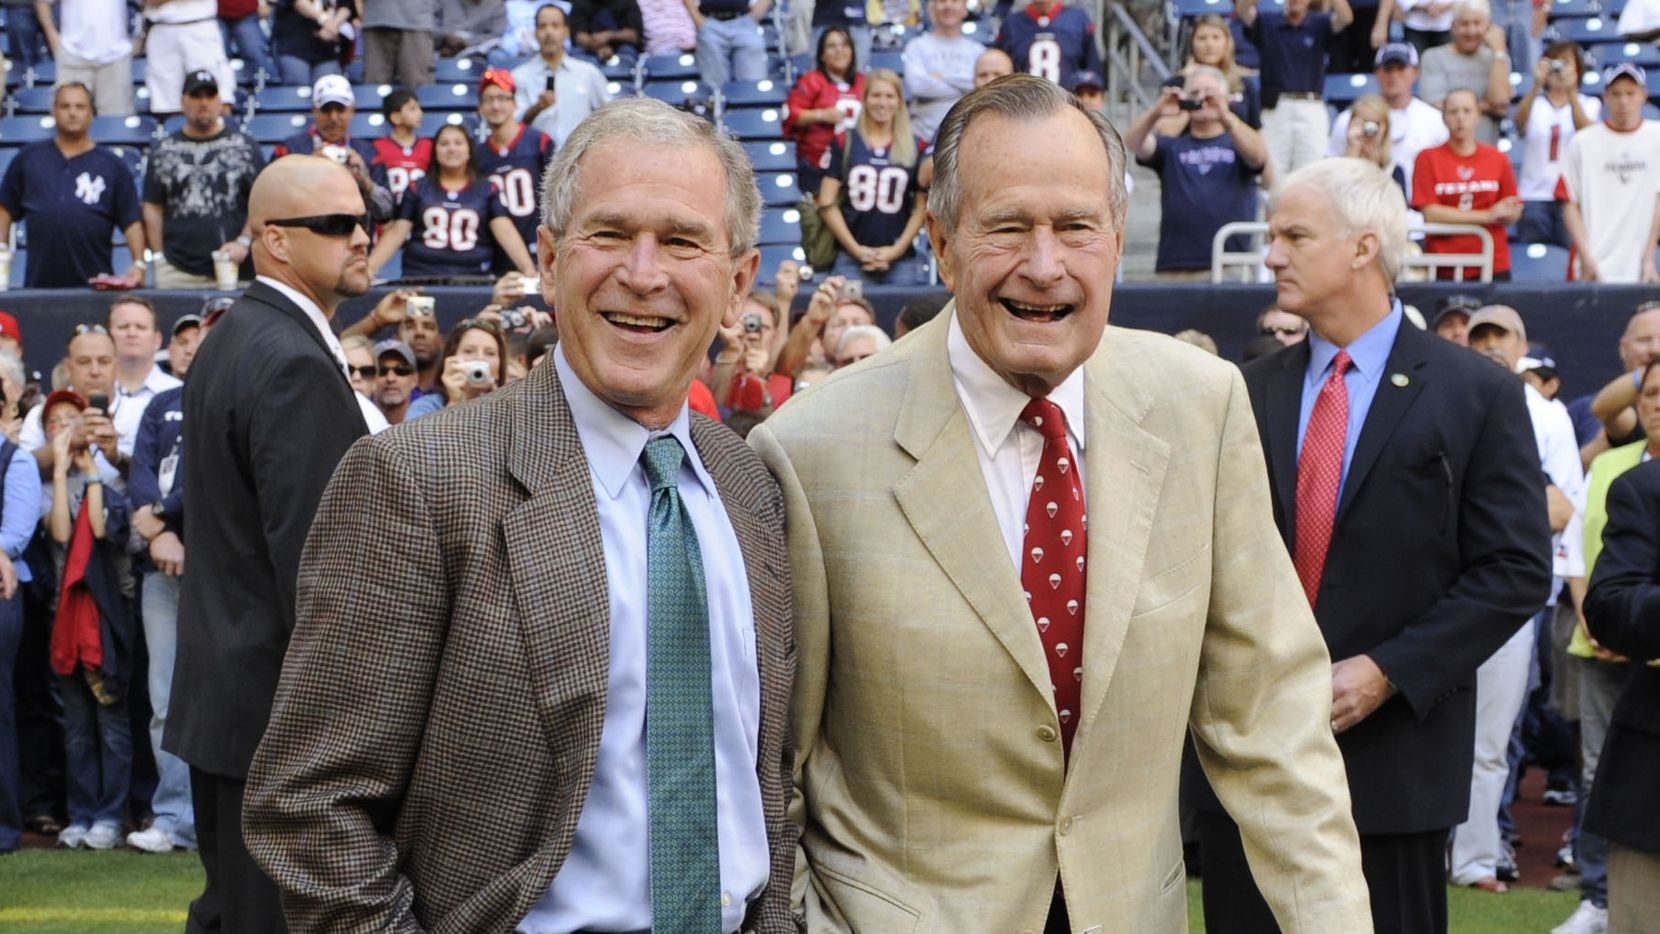 This Oct. 25, 2009 file photo shows former Presidents George H. W. Bush (right) and George W. Bush before a Houston Texans football game against the San Francisco 49ers.